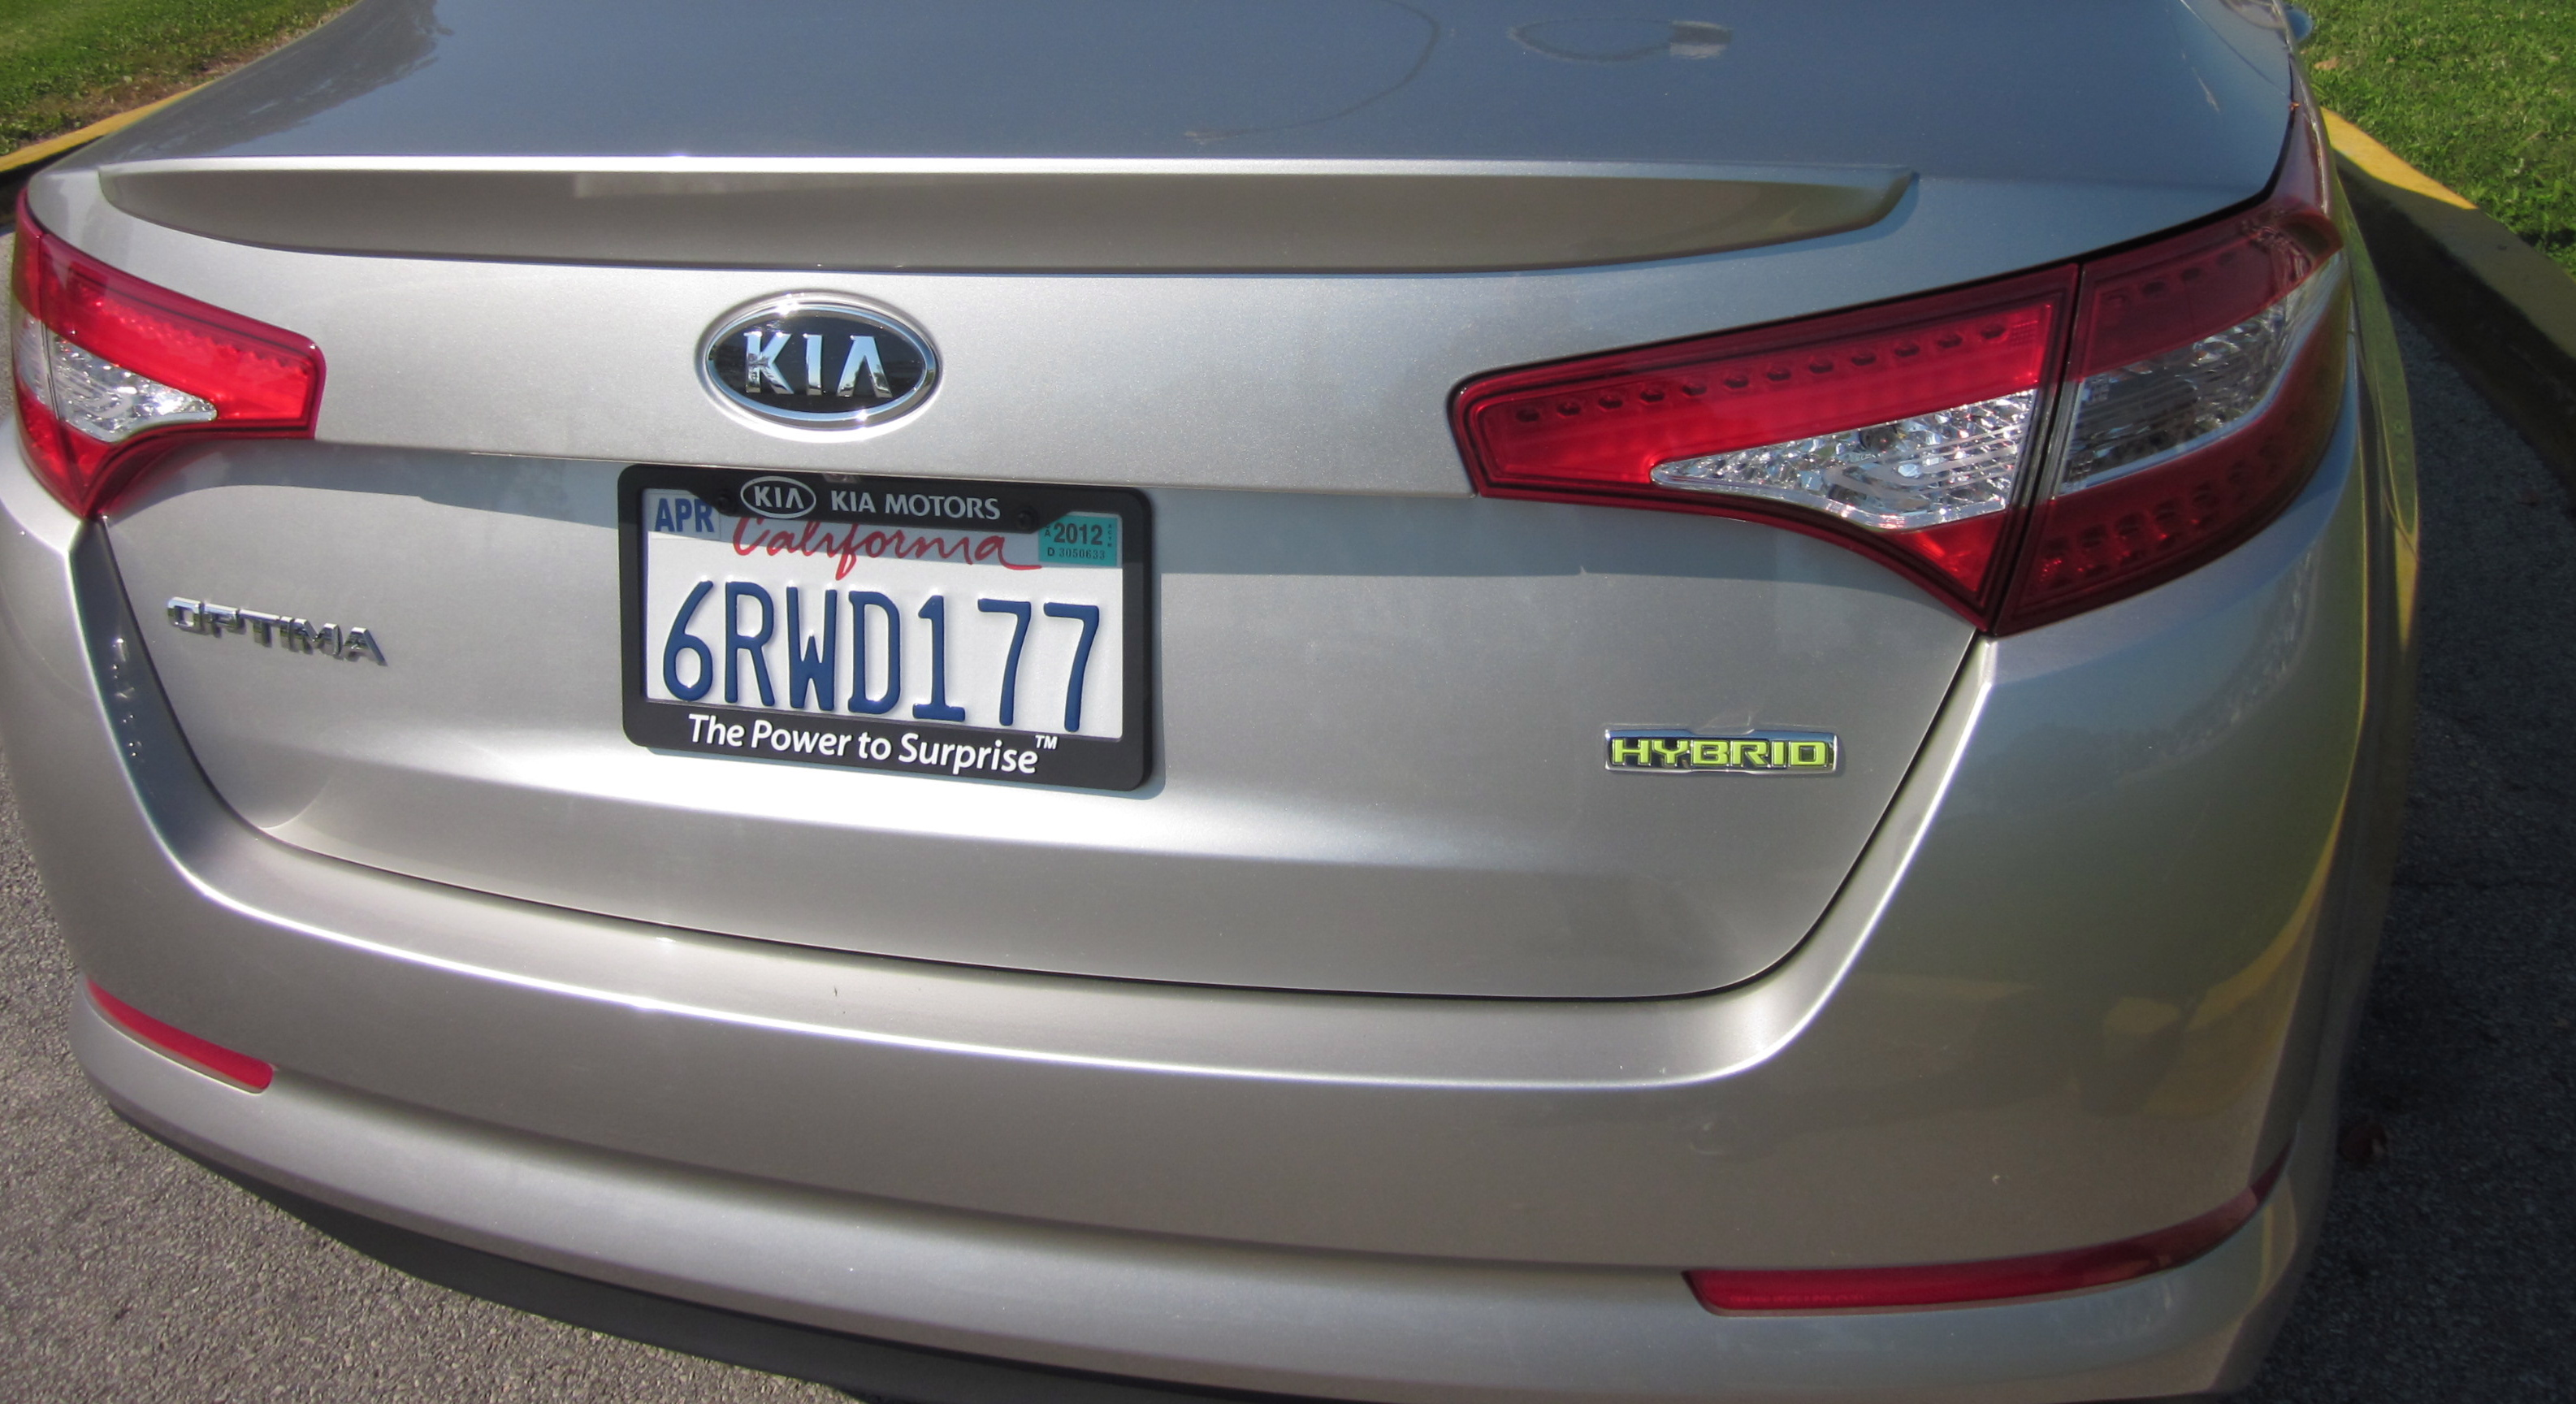 011982 2012 kia optima reviews green or mean by larry nutson 1 lg jpg